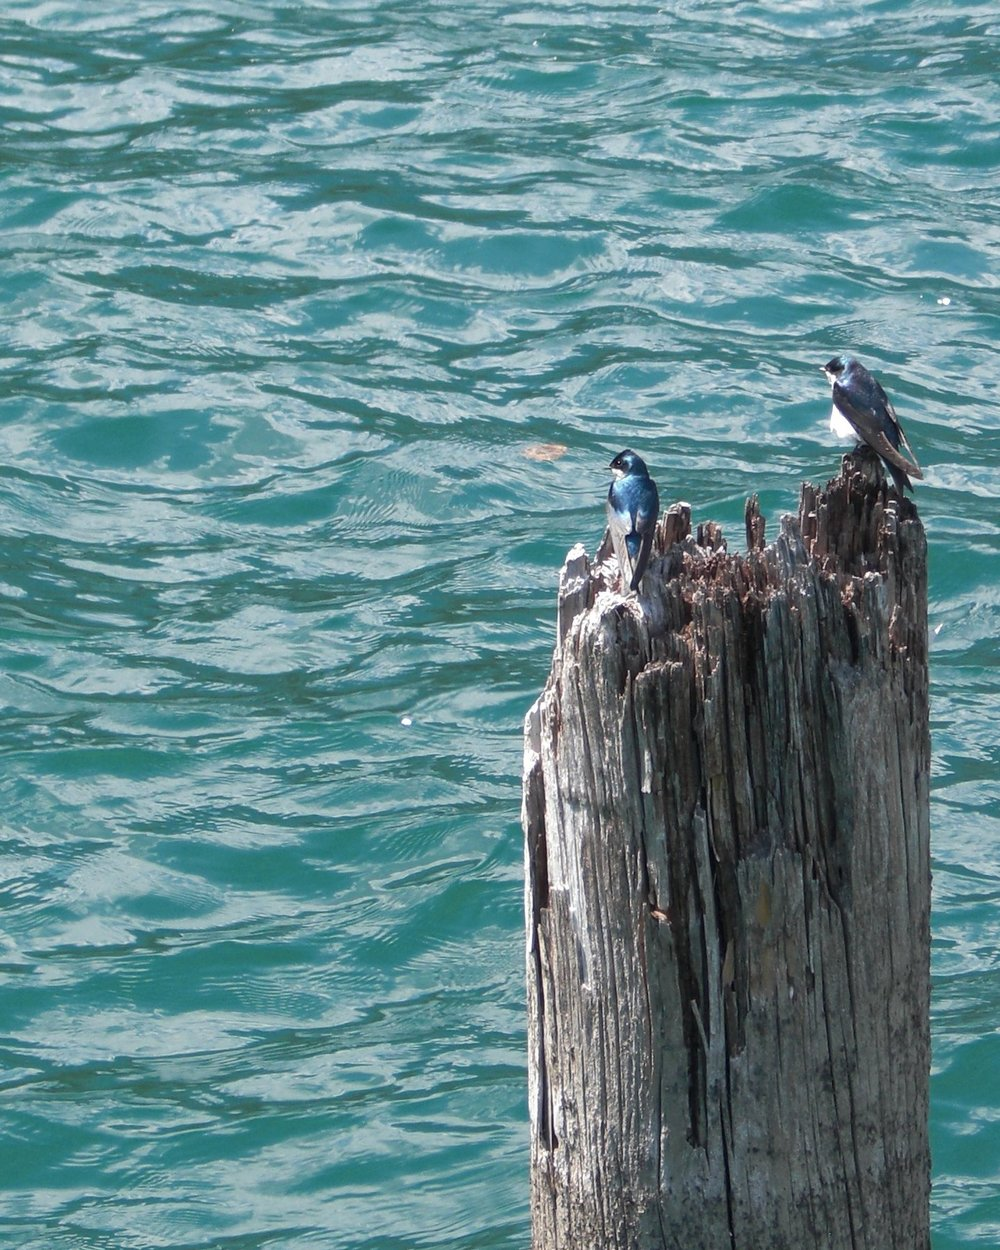 """Birds on Water"" - (CC BY-NC-SA 2.0) by Jason DeBoer-Moran"